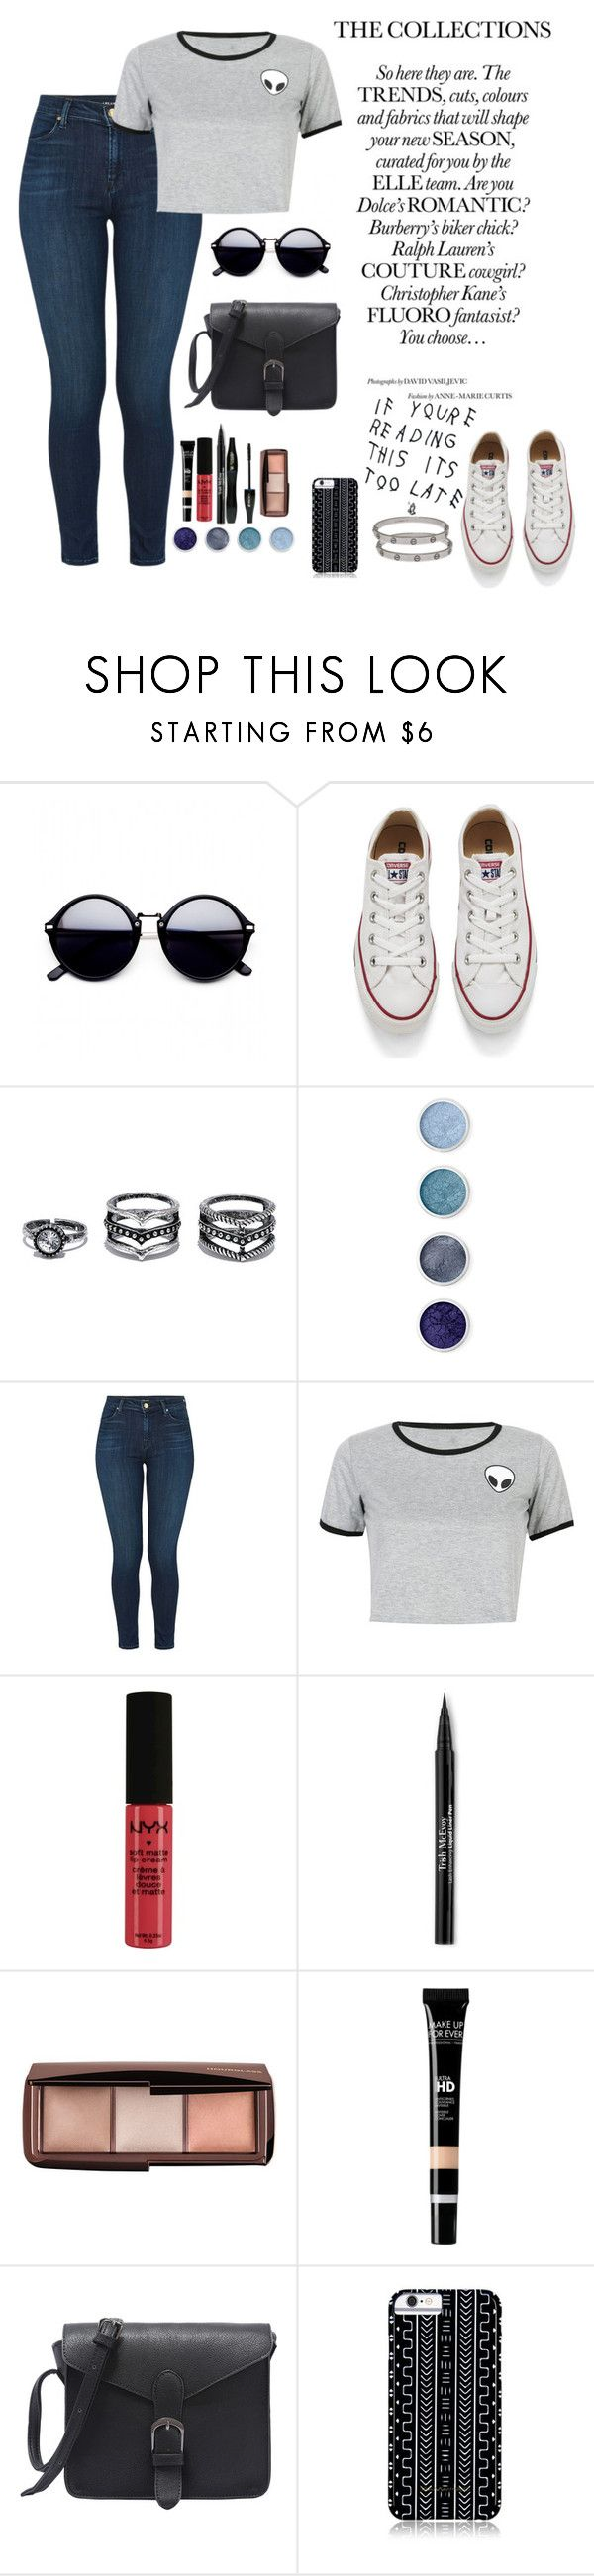 """Untitled #48"" by nanda-olly ❤ liked on Polyvore featuring Converse, LULUS, Terre Mère, J Brand, WithChic, NYX, Lancôme, Trish McEvoy, MAKE UP FOR EVER and Savannah Hayes"